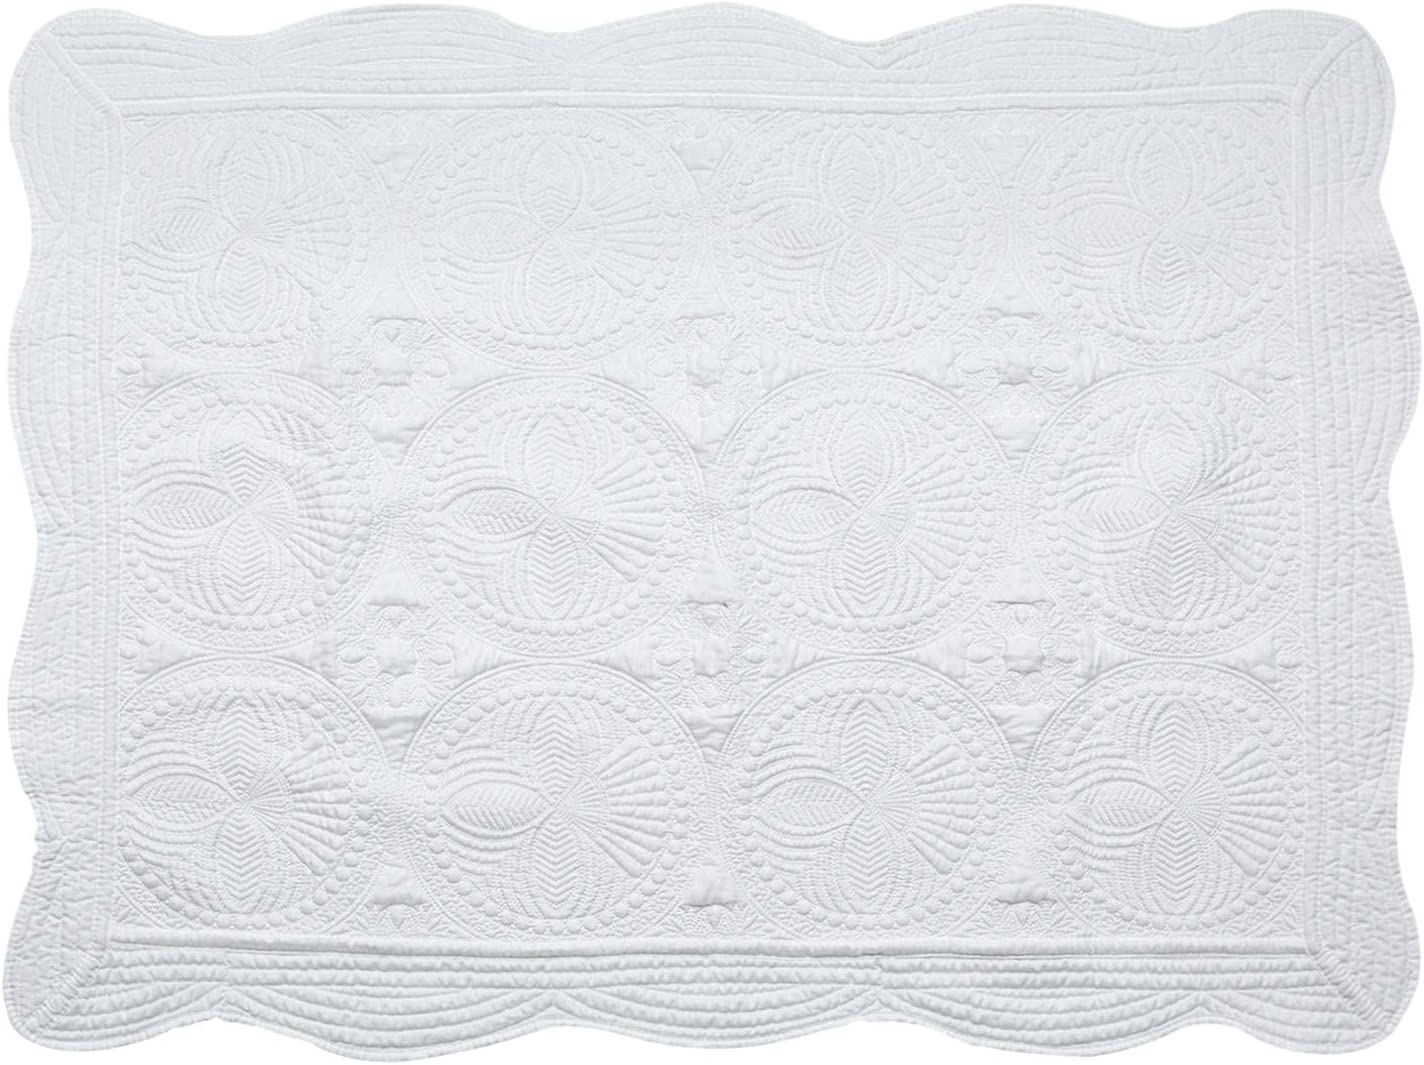 USTIDE 100/% Cotton Baby Quilt Blanket,Washable All Season Toddler Blankets for Baby,50x60-White